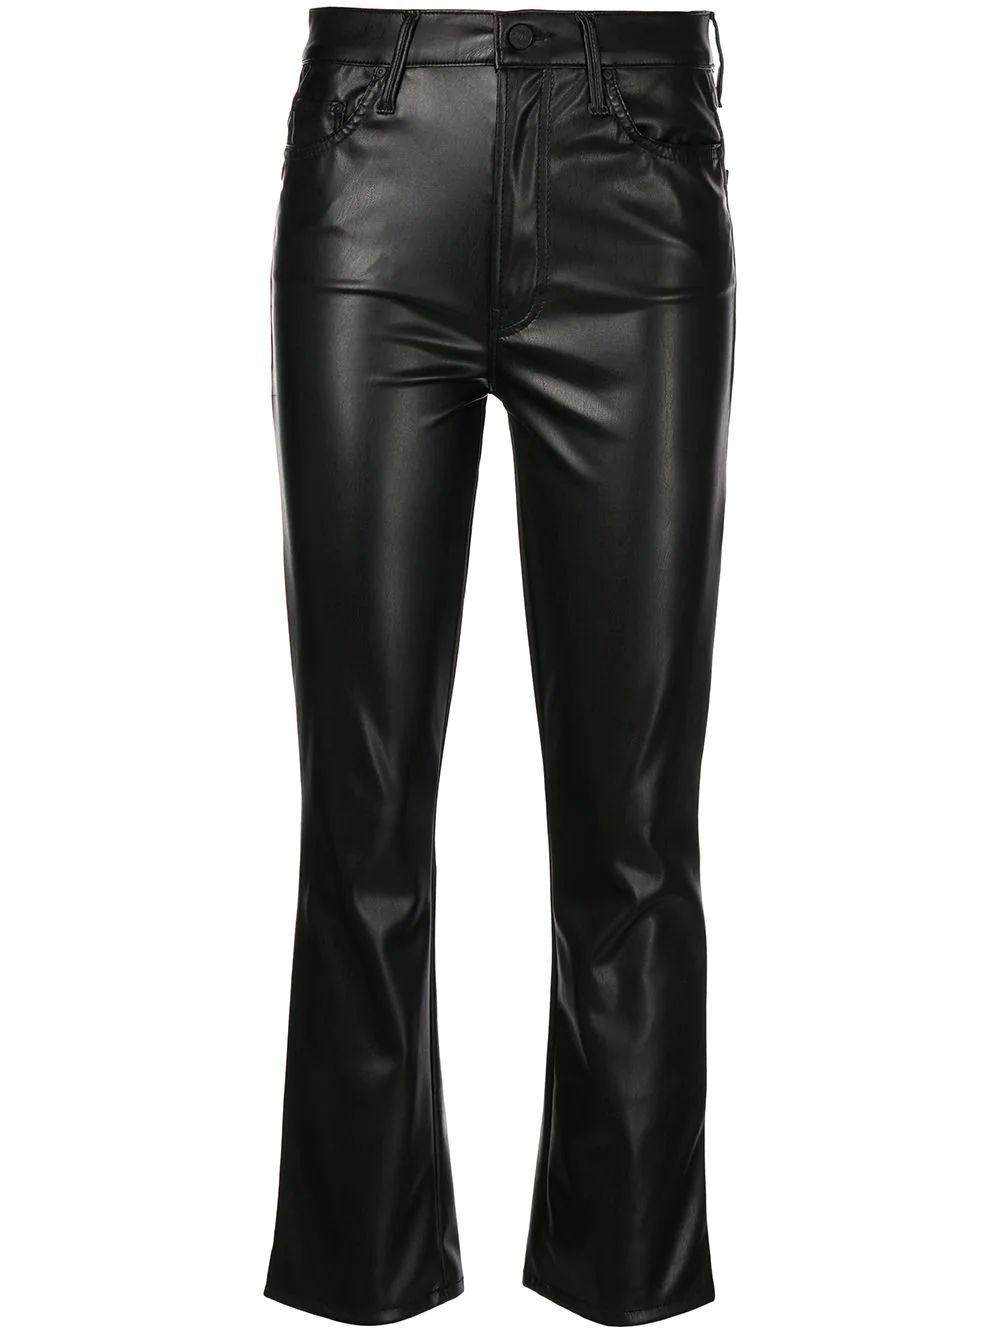 The Insider Ankle Faux Leather Item # 1327-1017